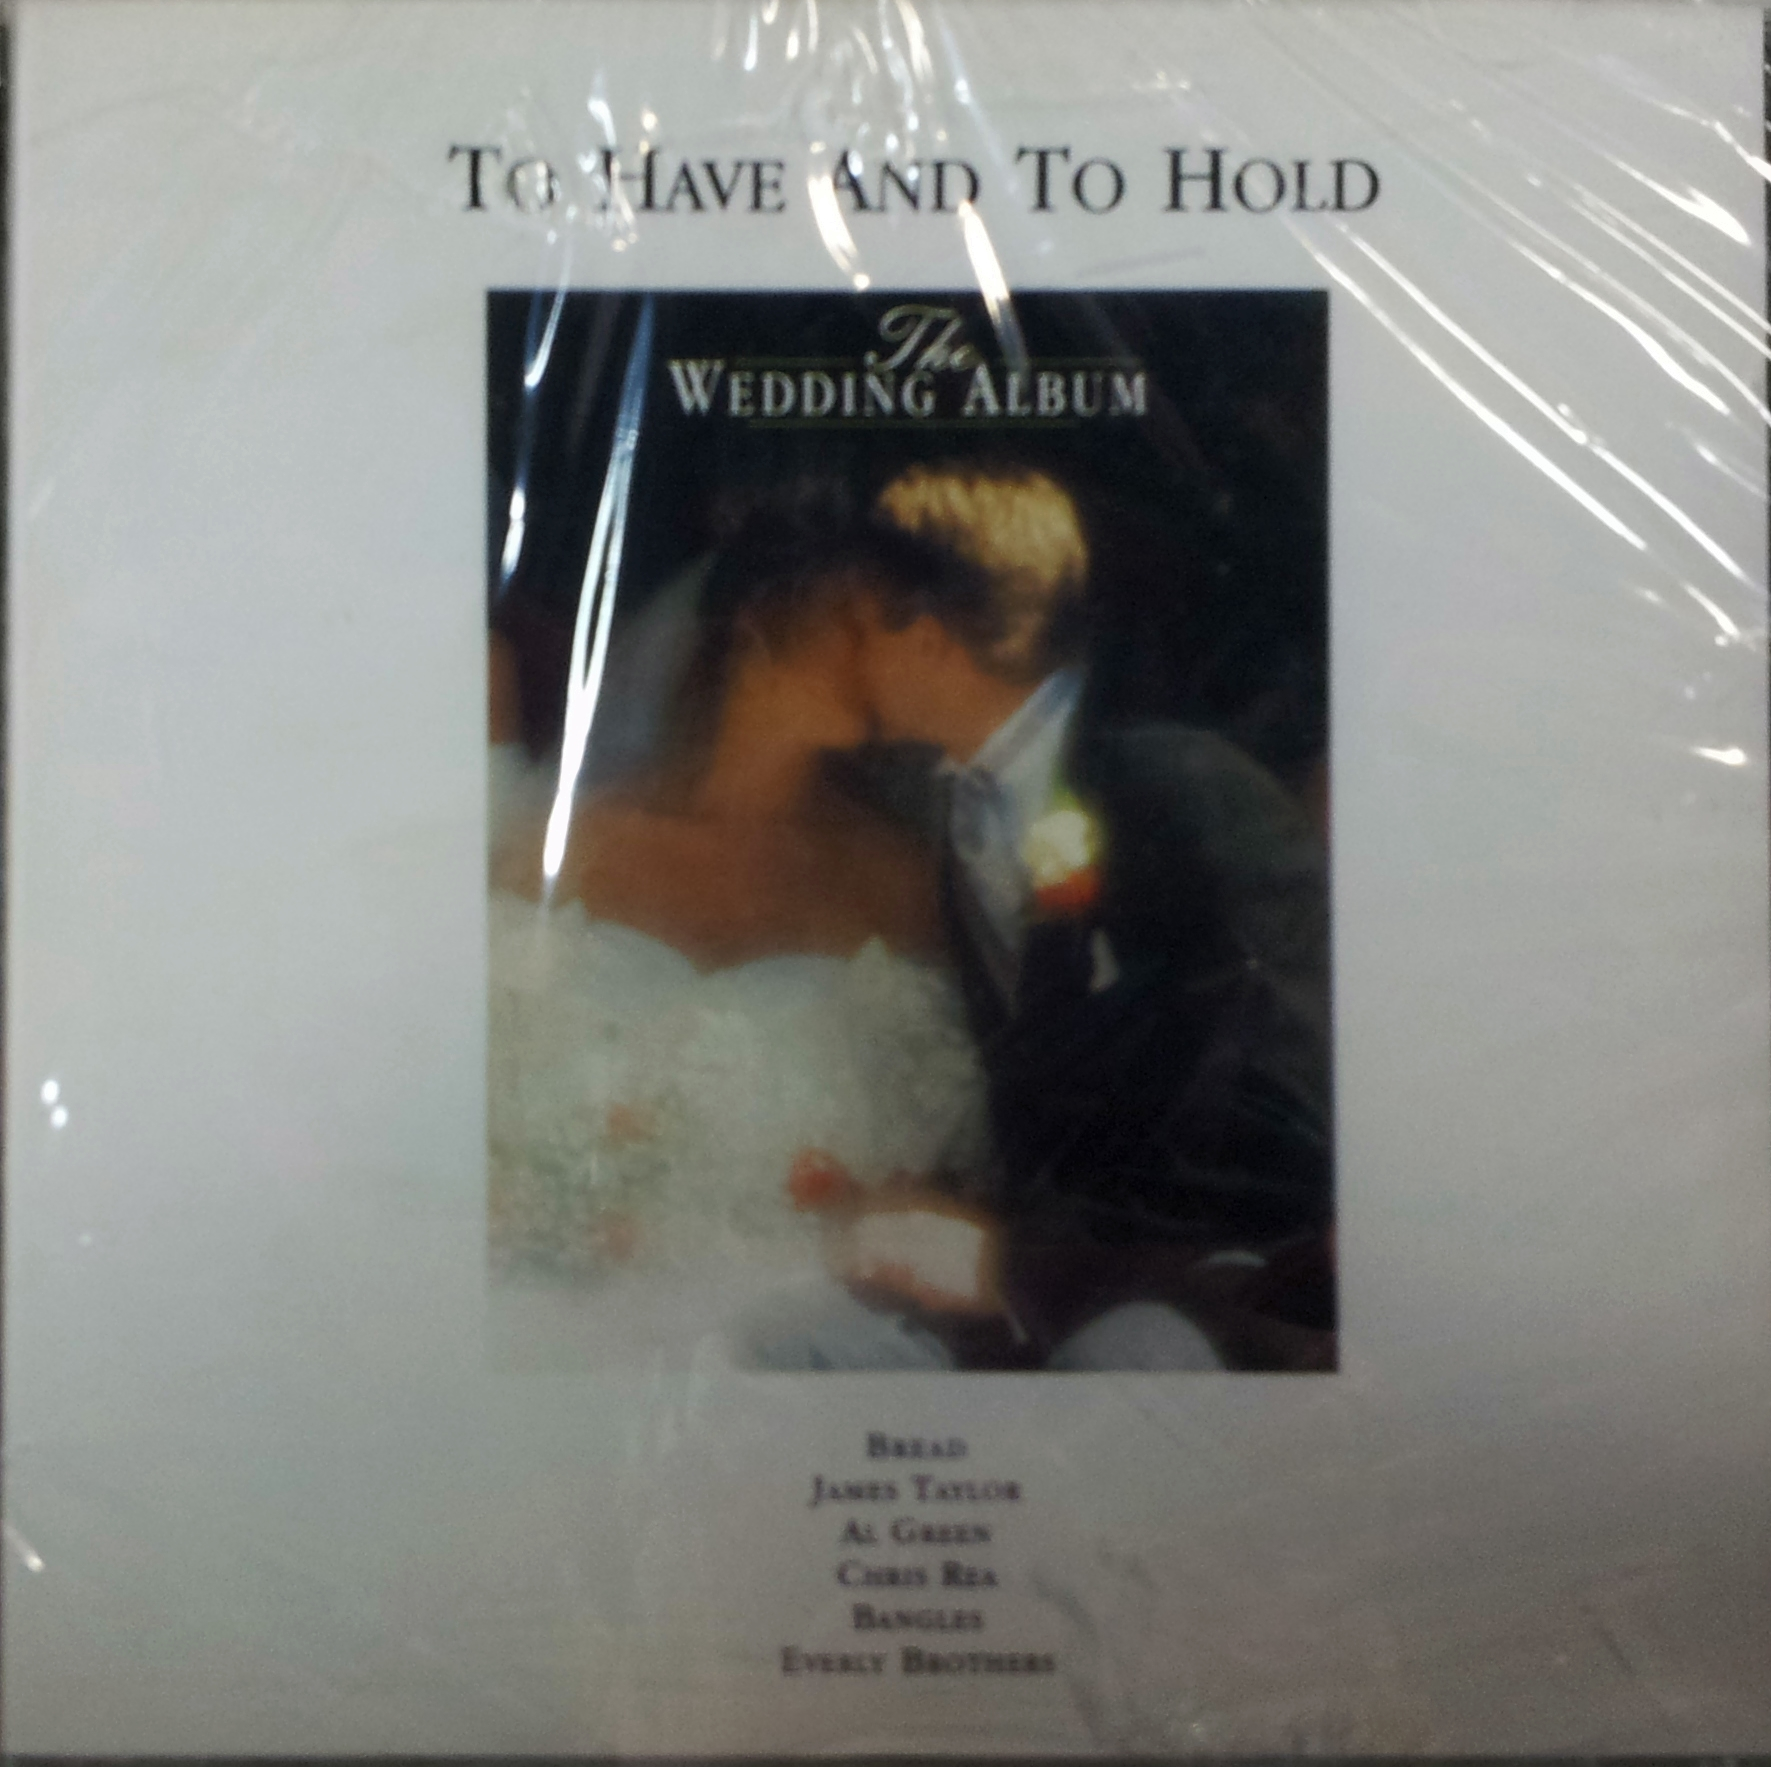 To have and to hold - The wedding album